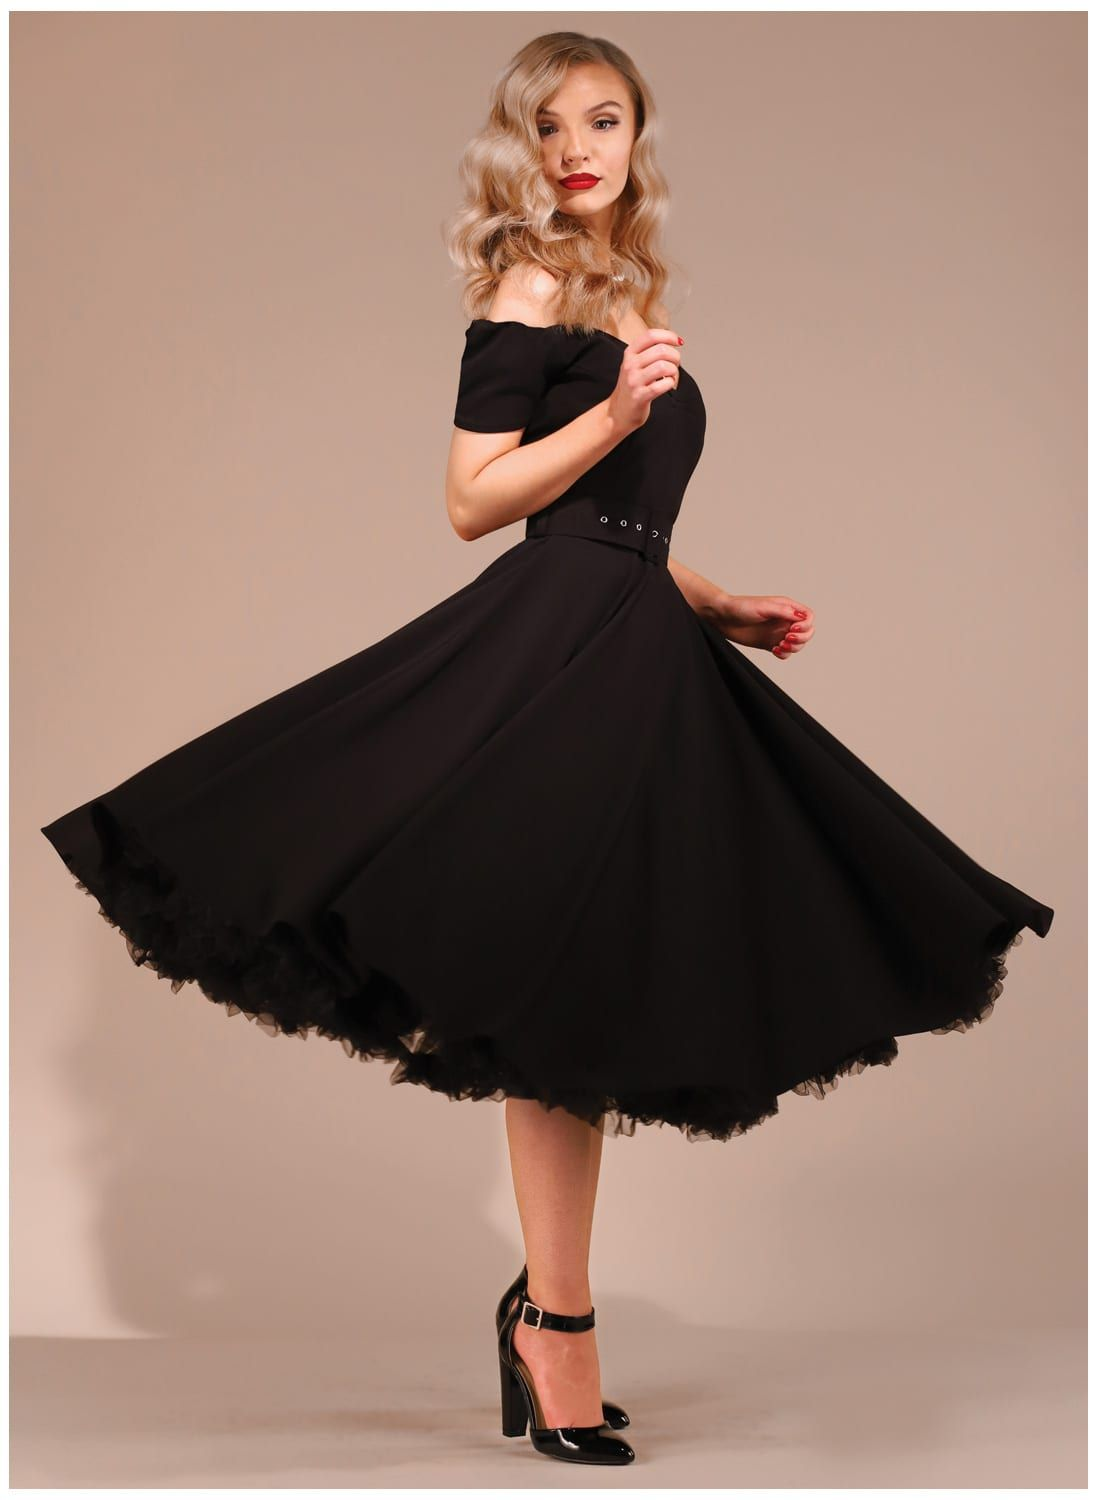 black dress outfit for party